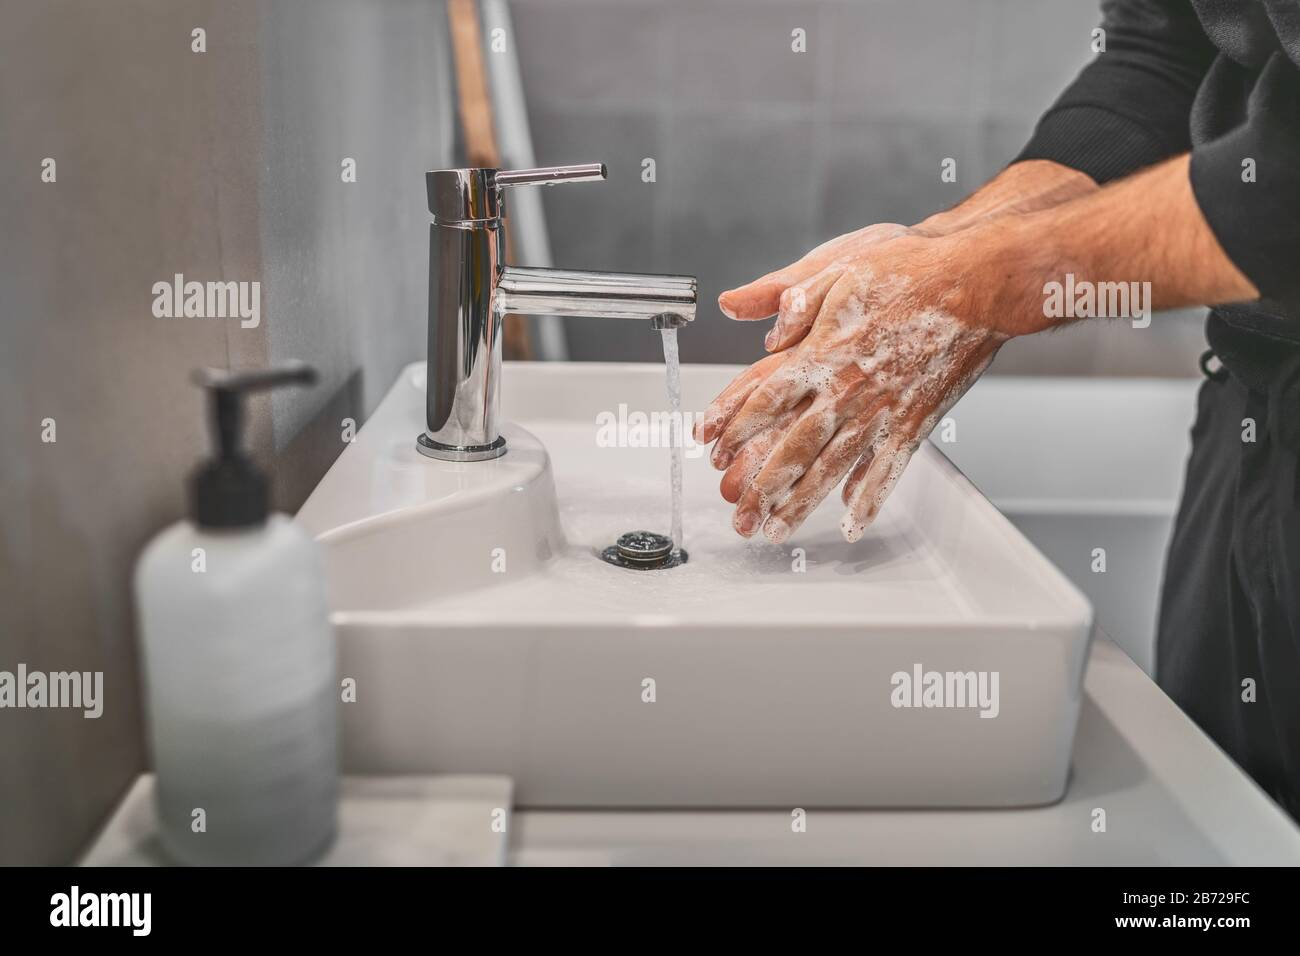 Washing hands with soap and hot water at home bathroom sink man cleansing hand hygiene for coronavirus outbreak prevention. Corona Virus pandemic protection by washing hands frequently. Stock Photo